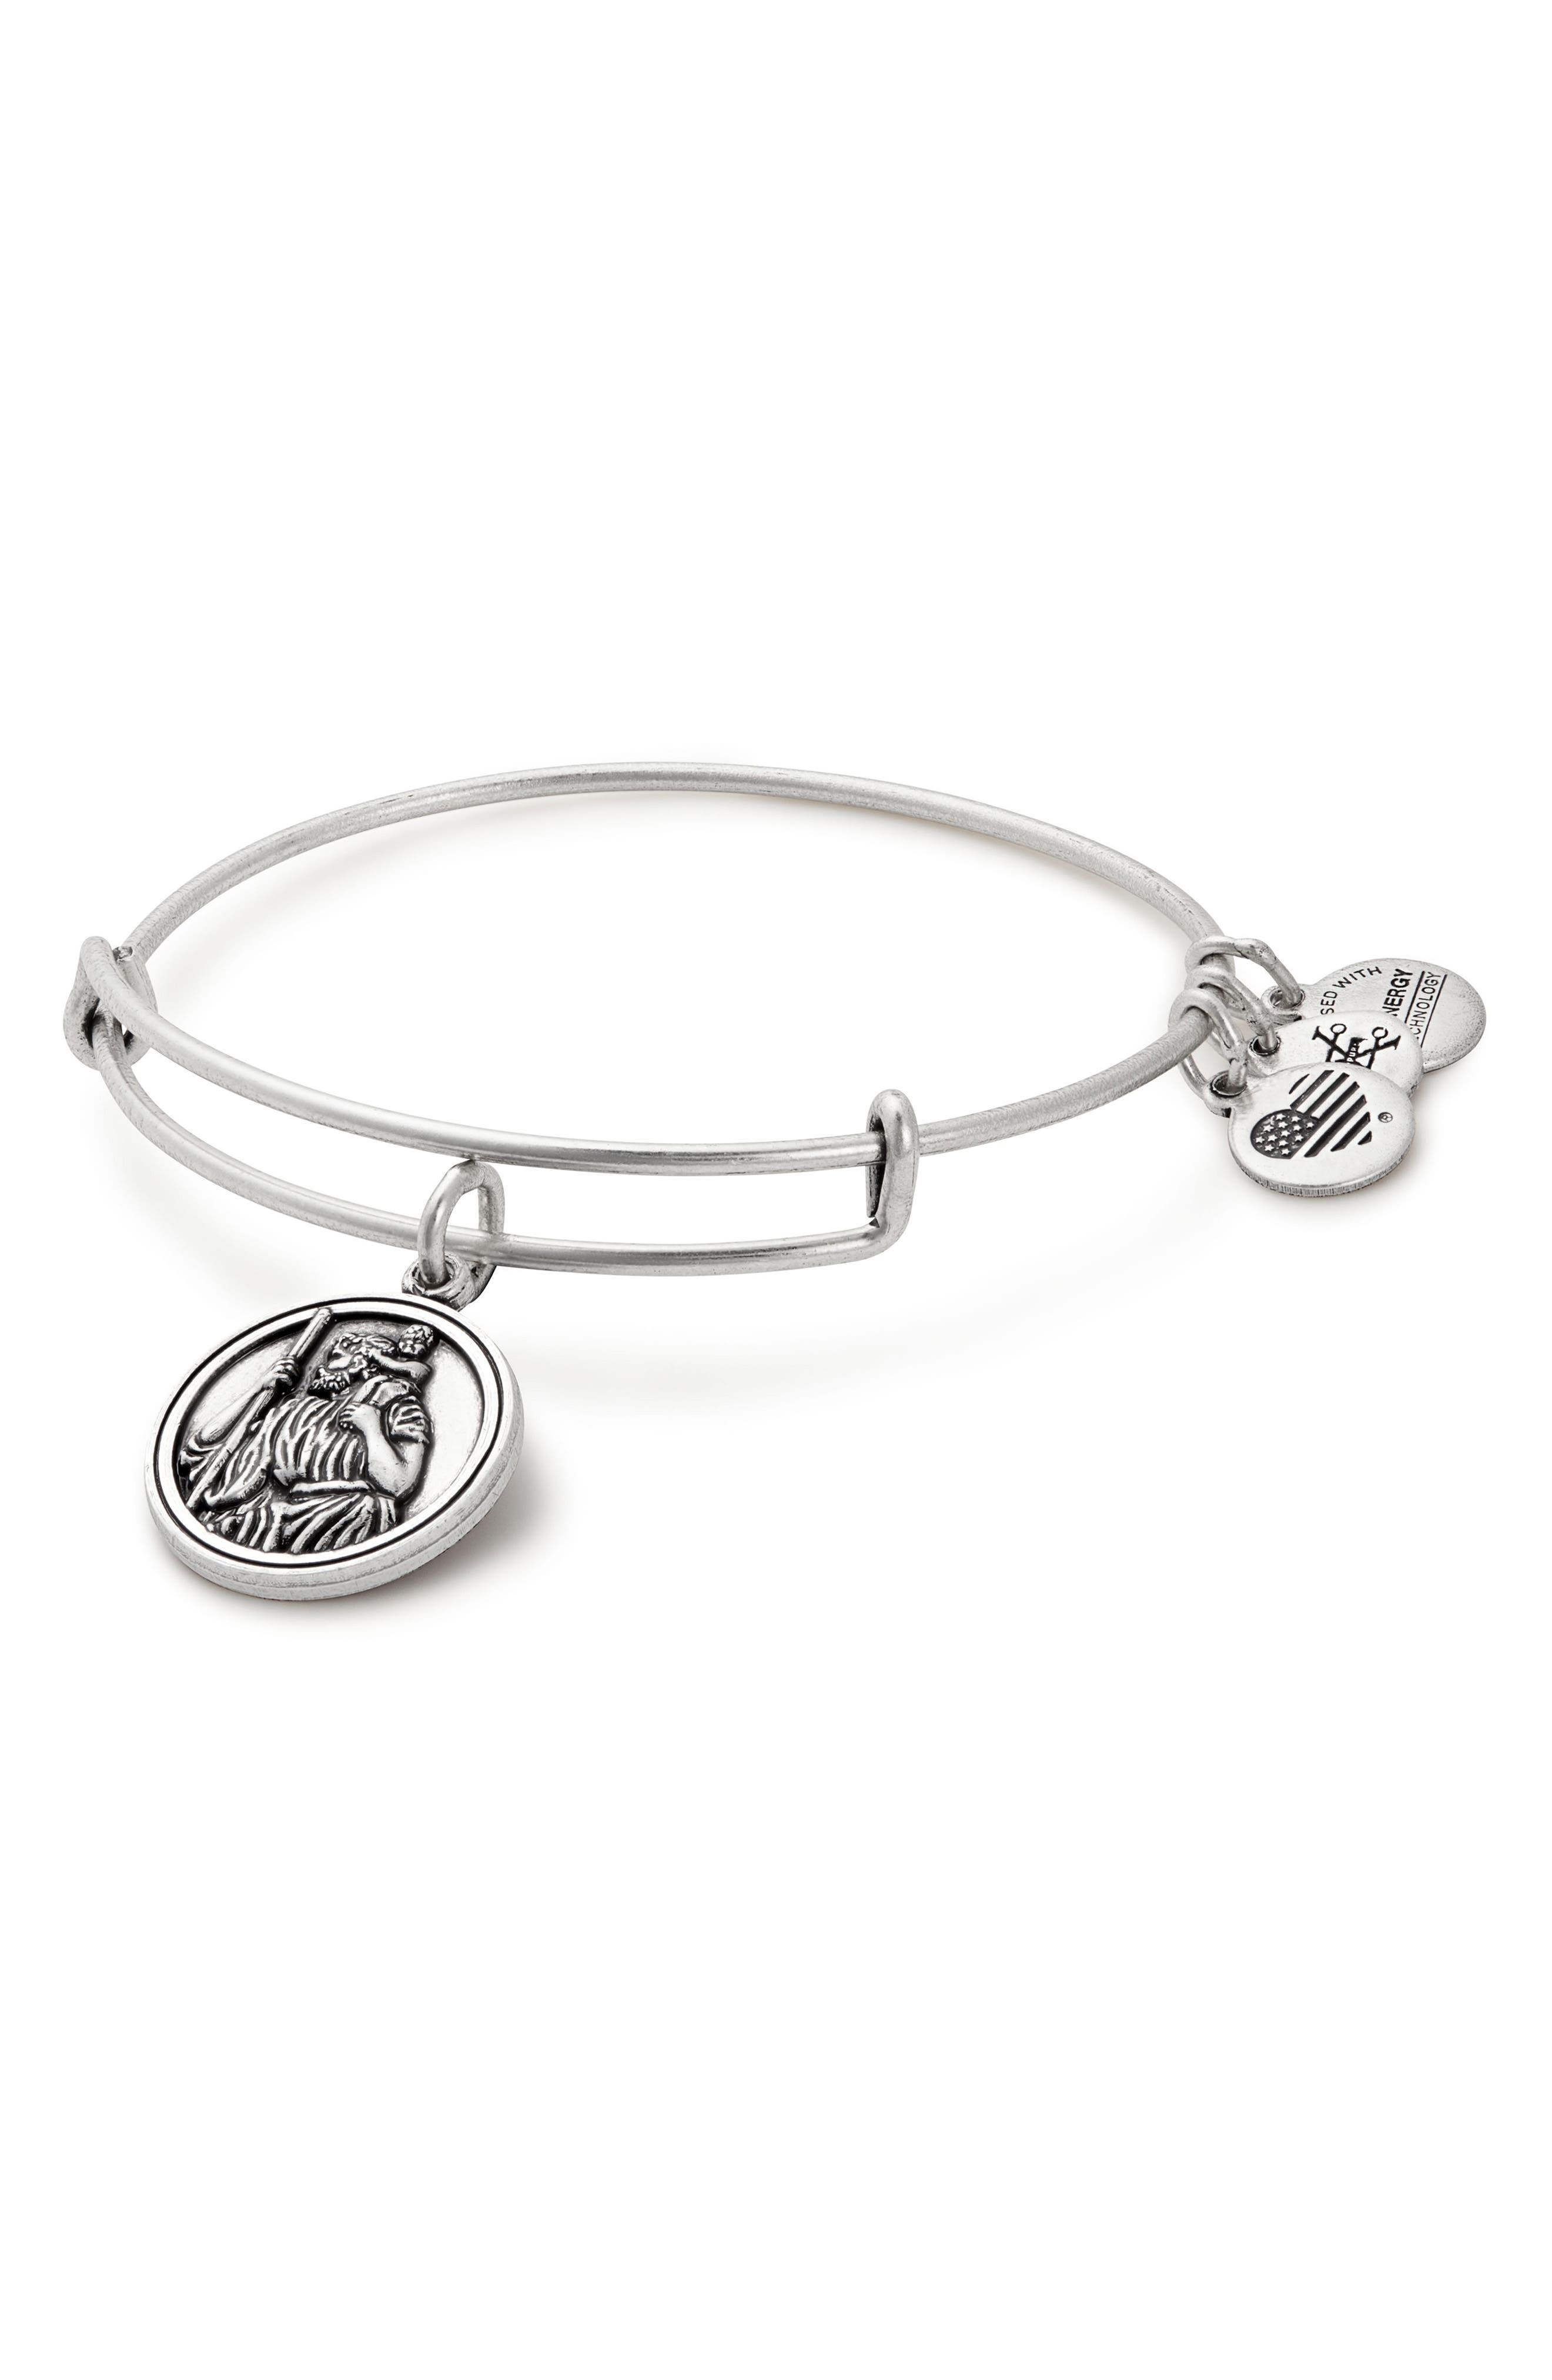 St. Christopher Adjustable Wire Bangle,                             Main thumbnail 1, color,                             Silver